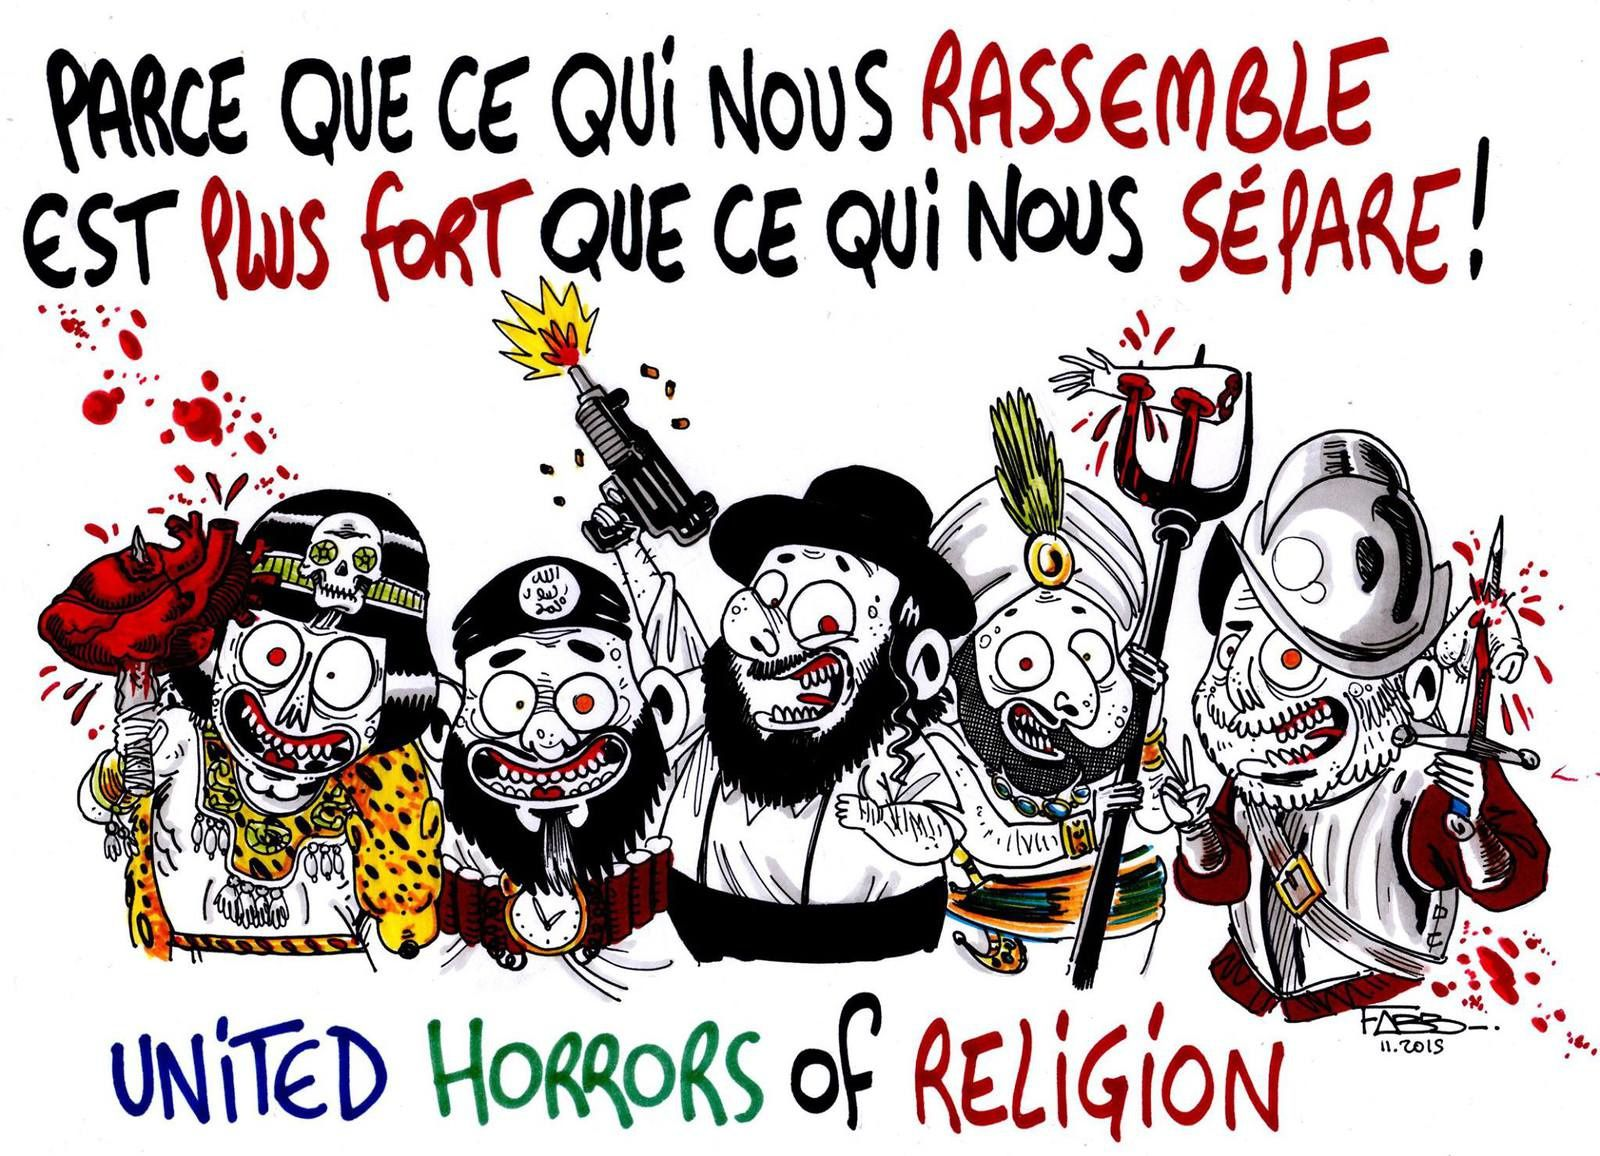 United horrors of religion